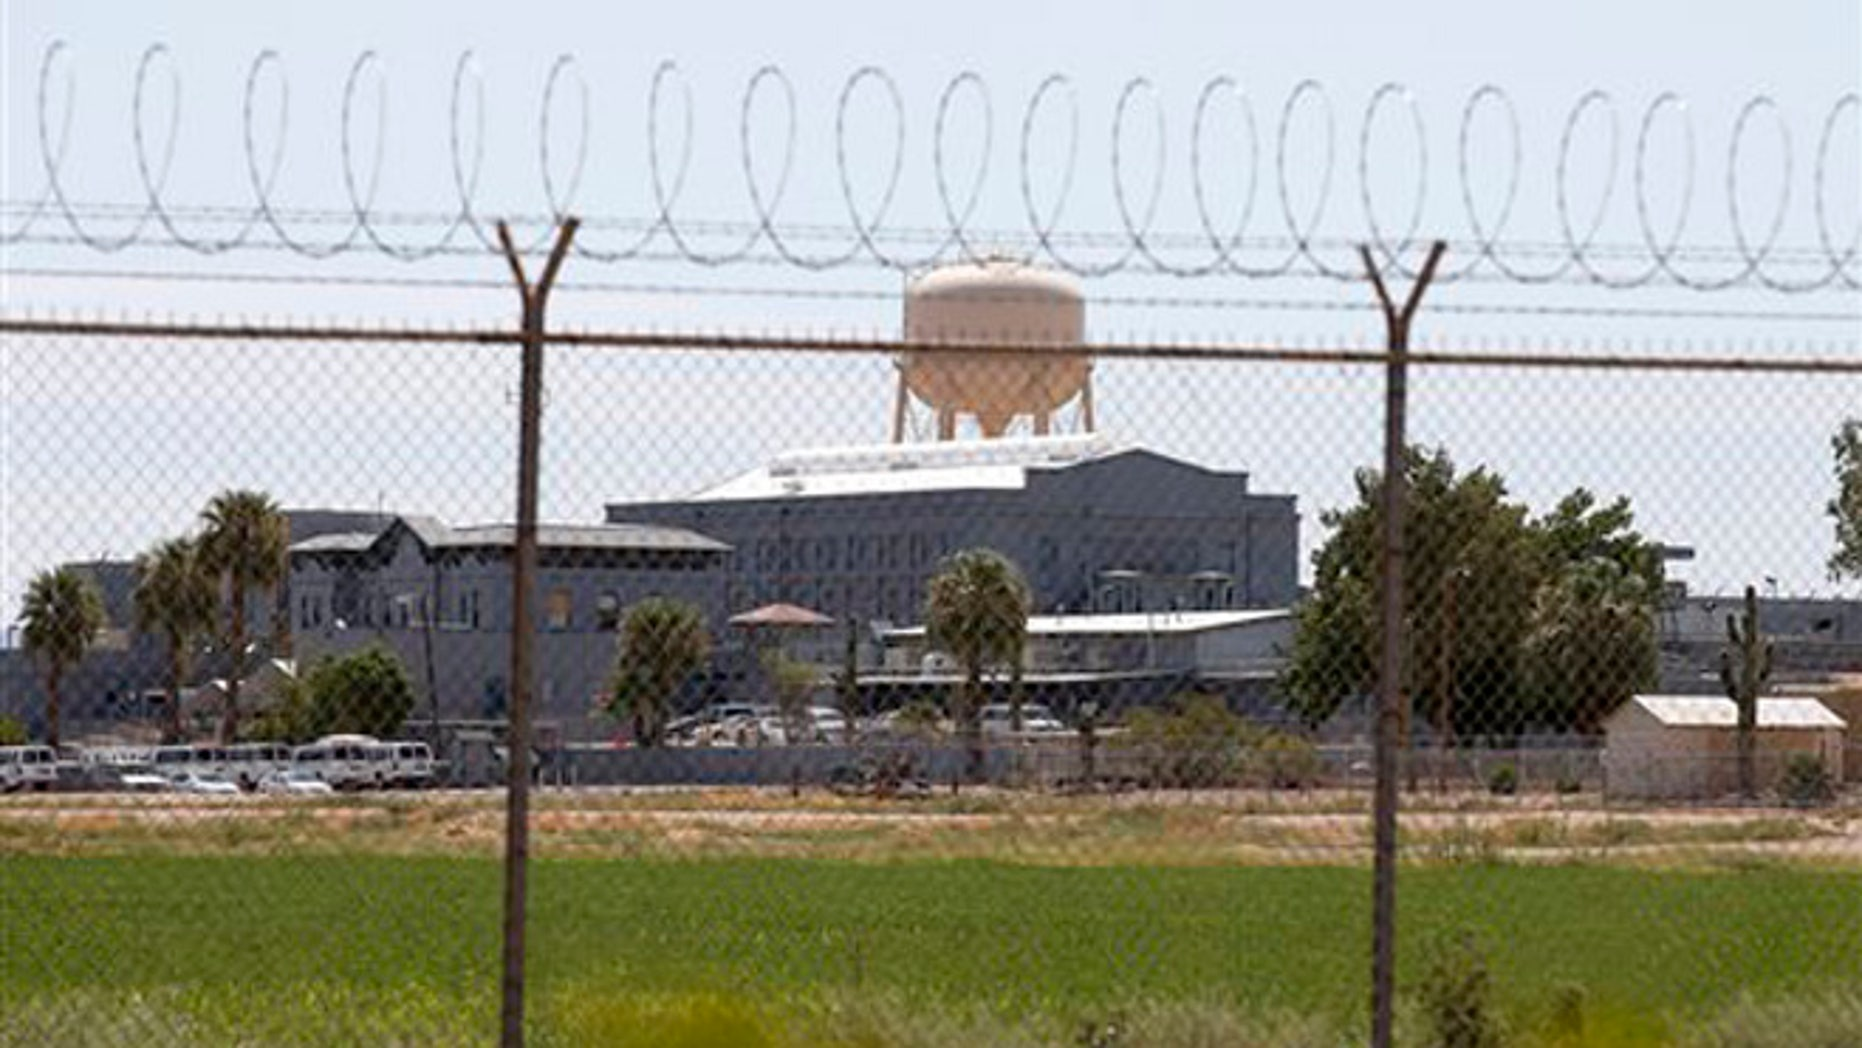 In this file photo a fence surrounds the state prison in Florence, Ariz.